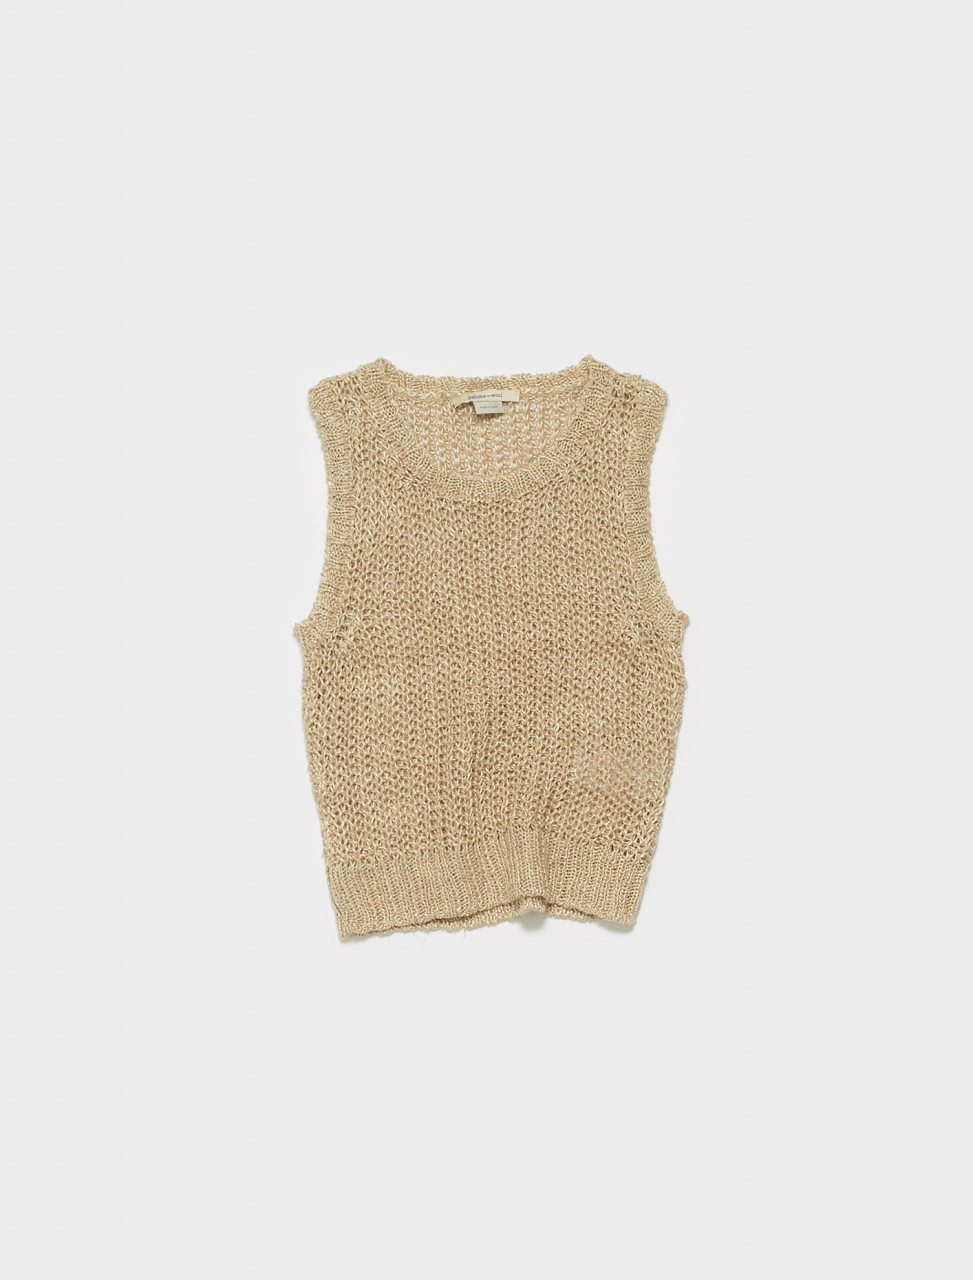 PKM029-147 PALOMA WOOL BULMA KNIT TANK TOP IN NATURAL